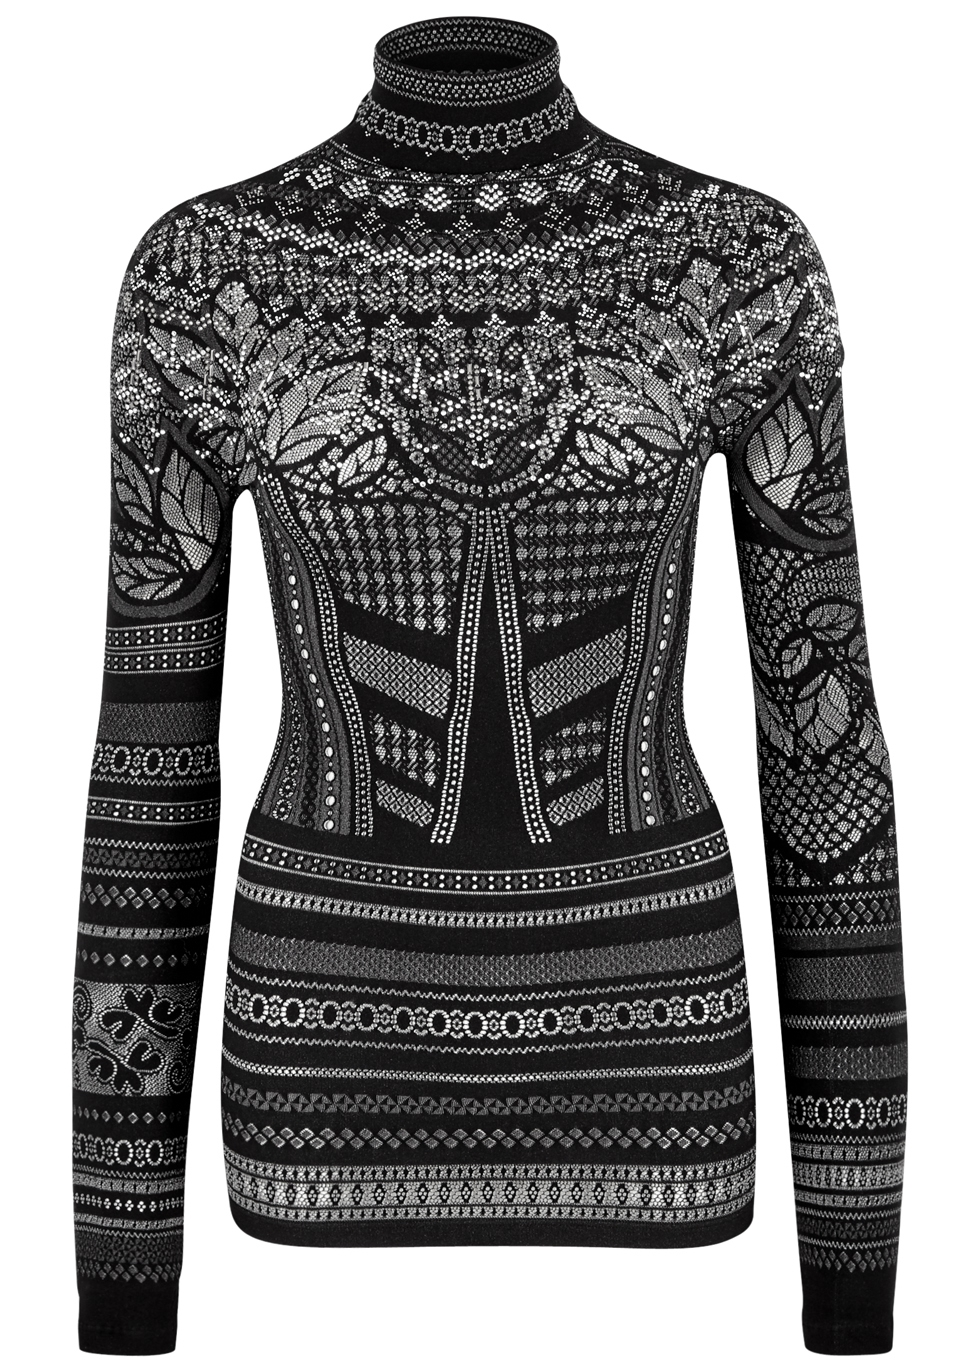 HIGH ICON STUD-EMBELLISHED JERSEY TOP